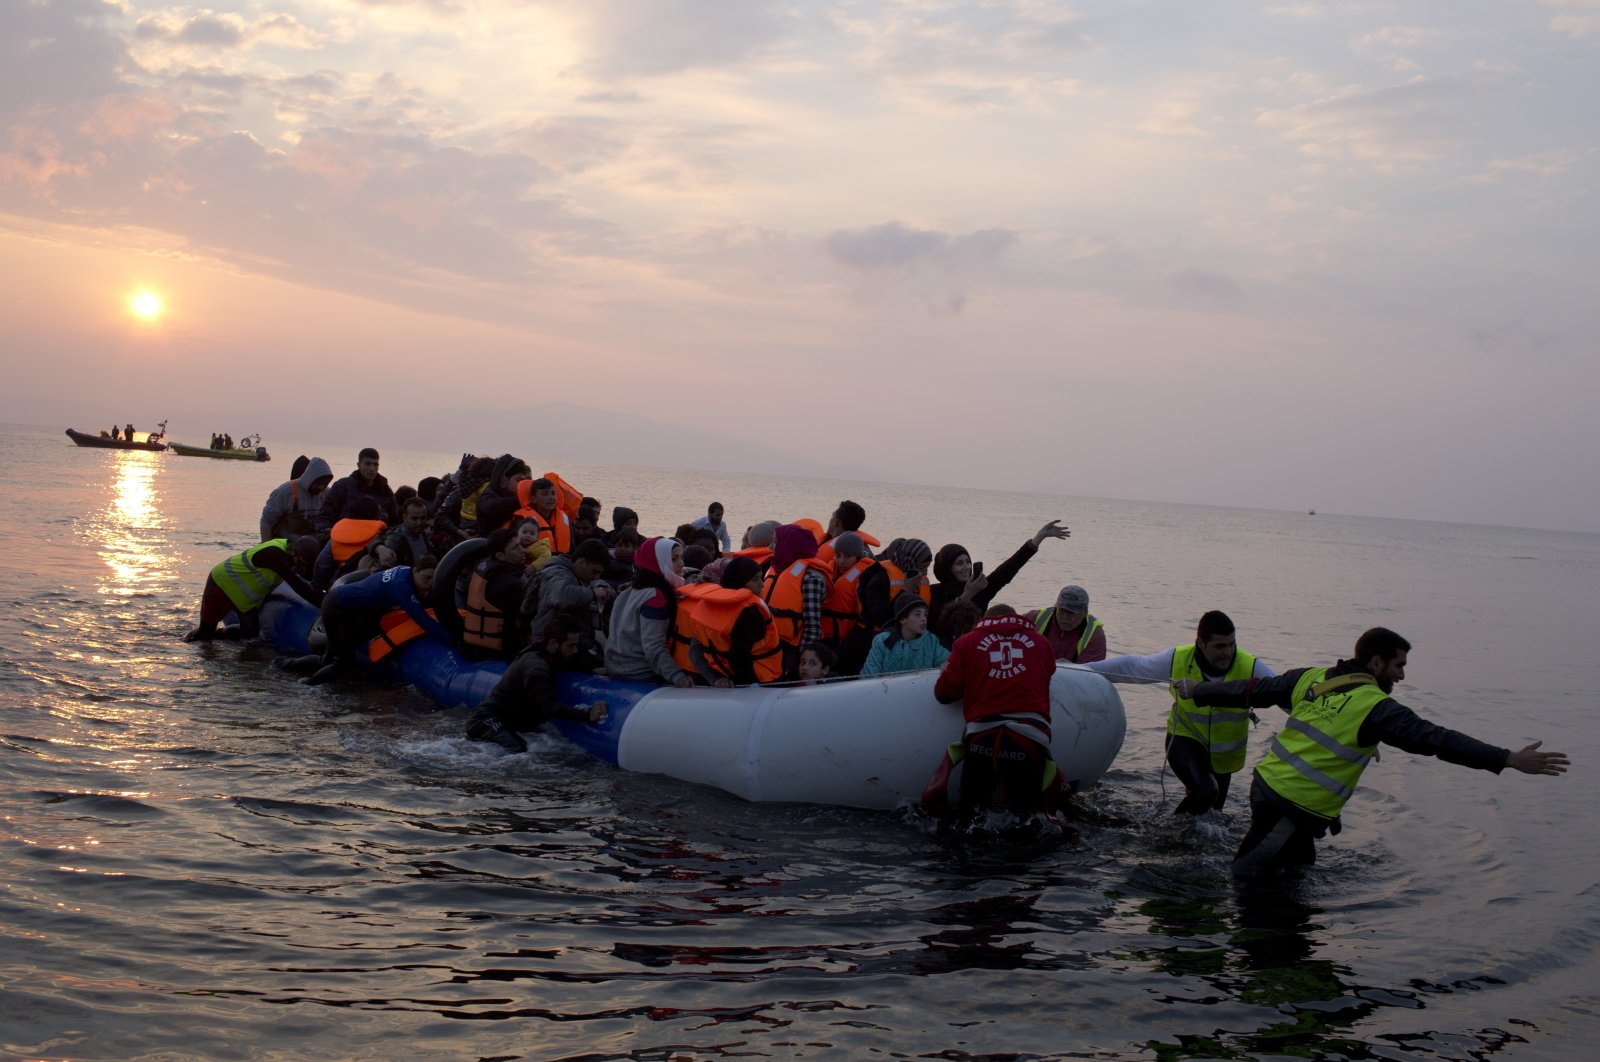 Volunteers help migrants and refugees on a dingy as they arrive on the shore of the northeastern Greek island of Lesbos, after crossing the Aegean sea from Turkey, March 20, 2019. (AP Photo)